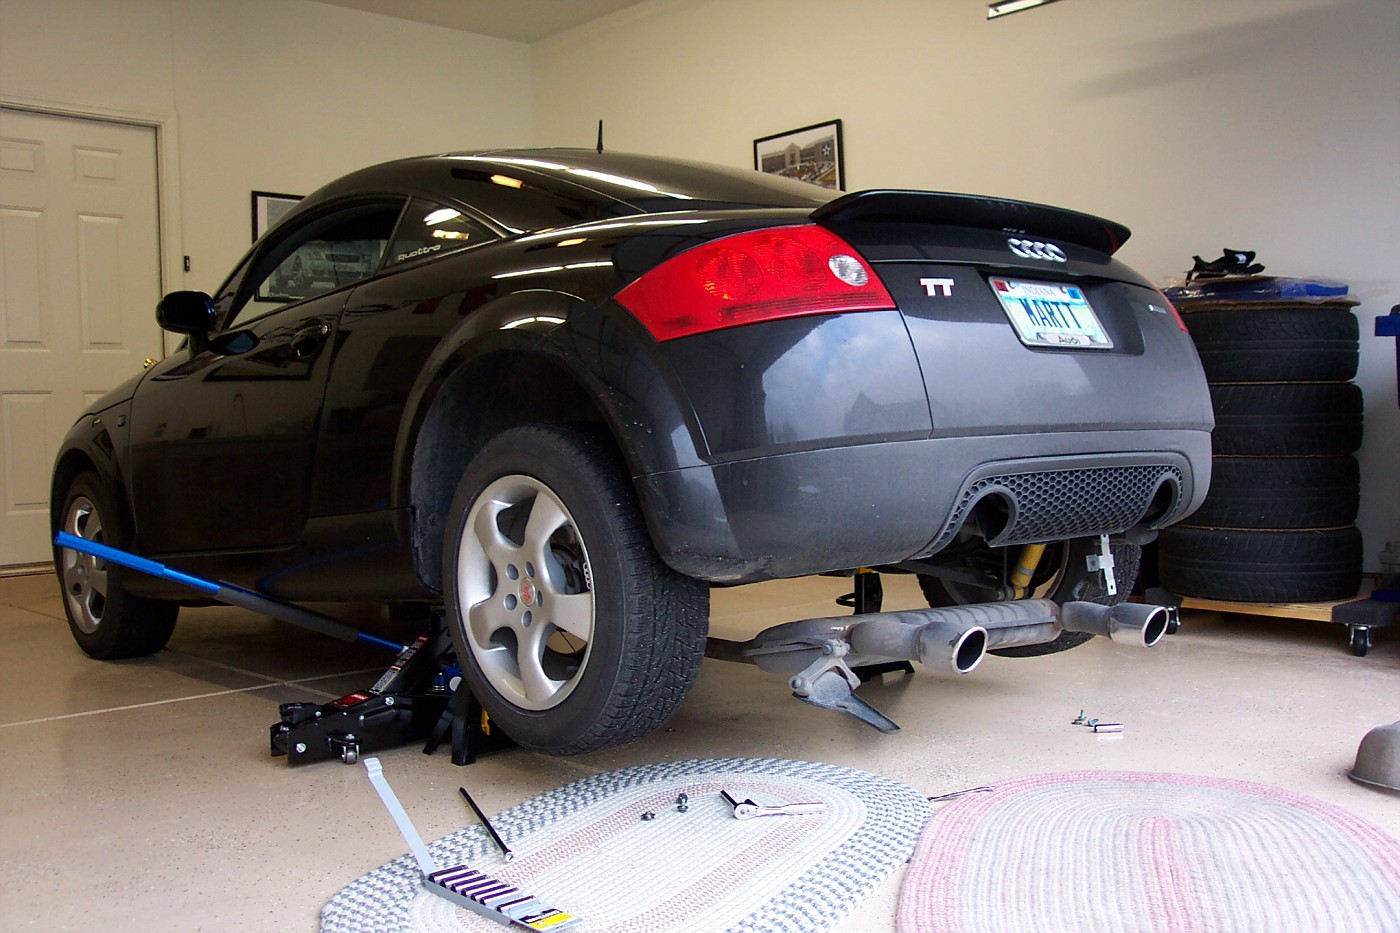 Time to lube the sway bar. Rear of car on jackstands - no need to take wheels off. Drop exhaust - support with jack.